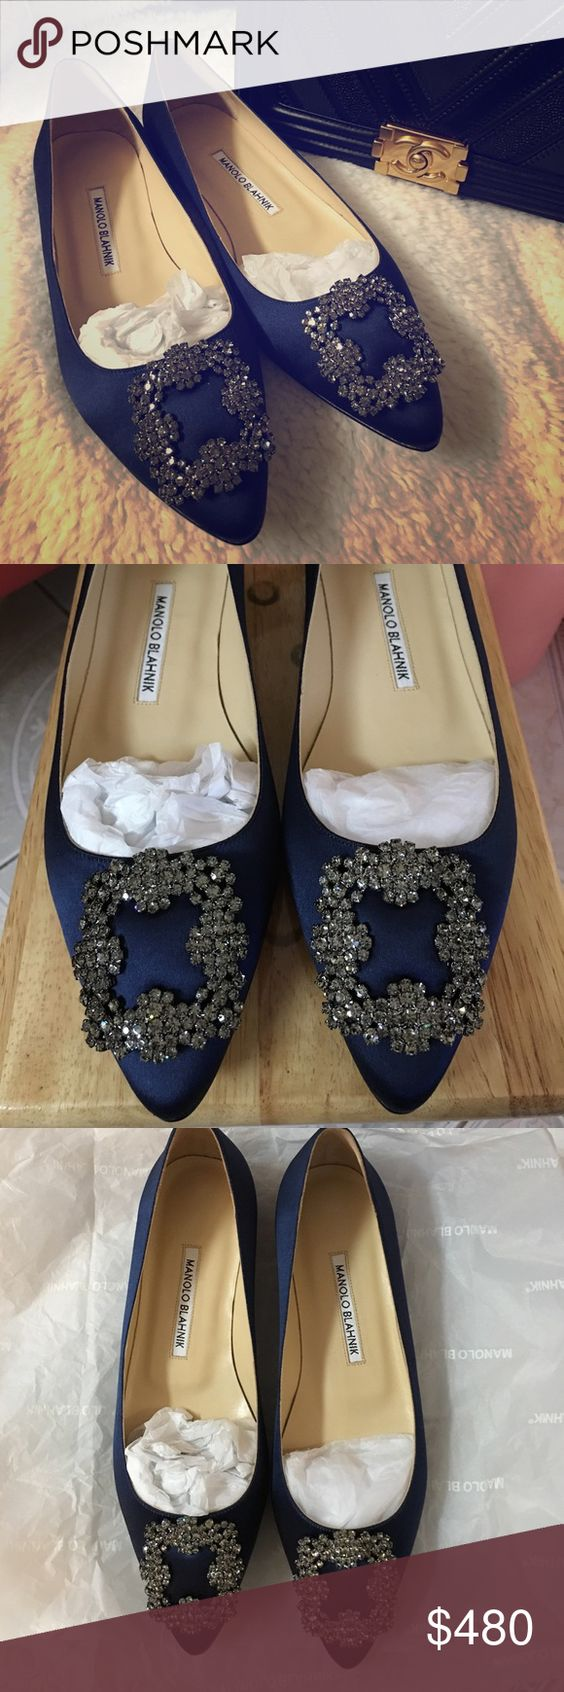 manolo blahnik shoes nordstrom rack